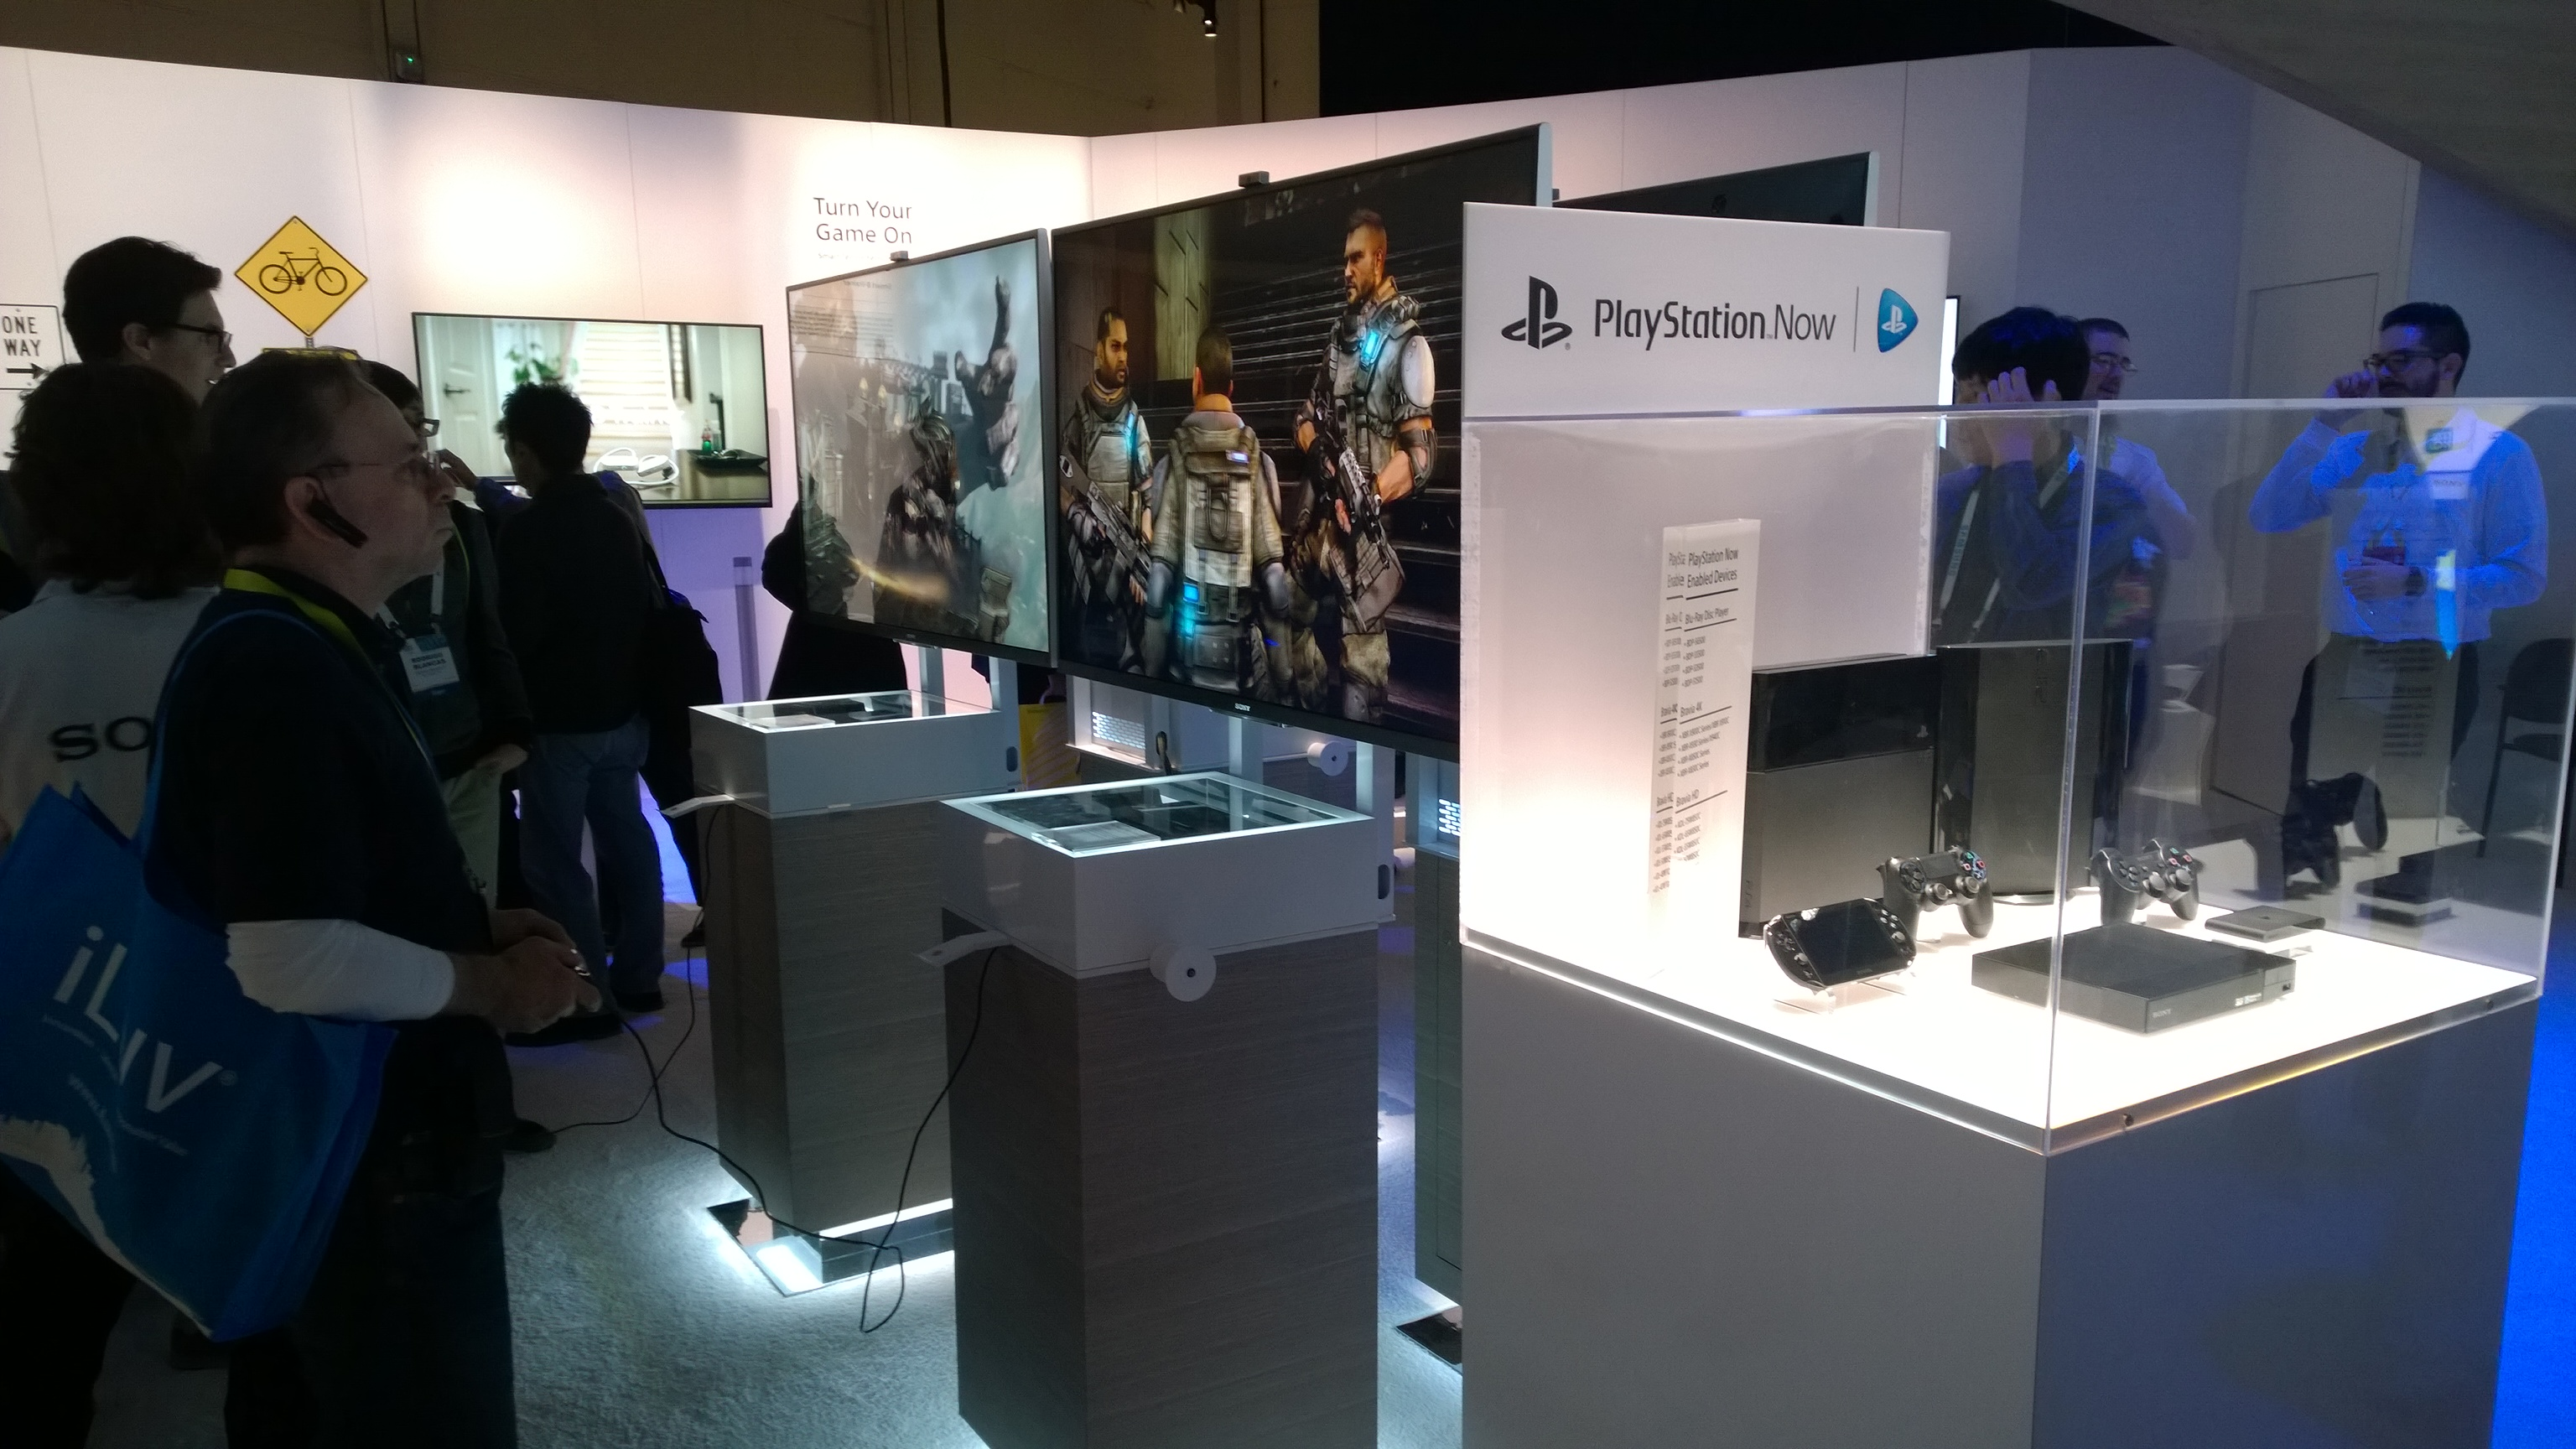 Playstation and Playstation Now service